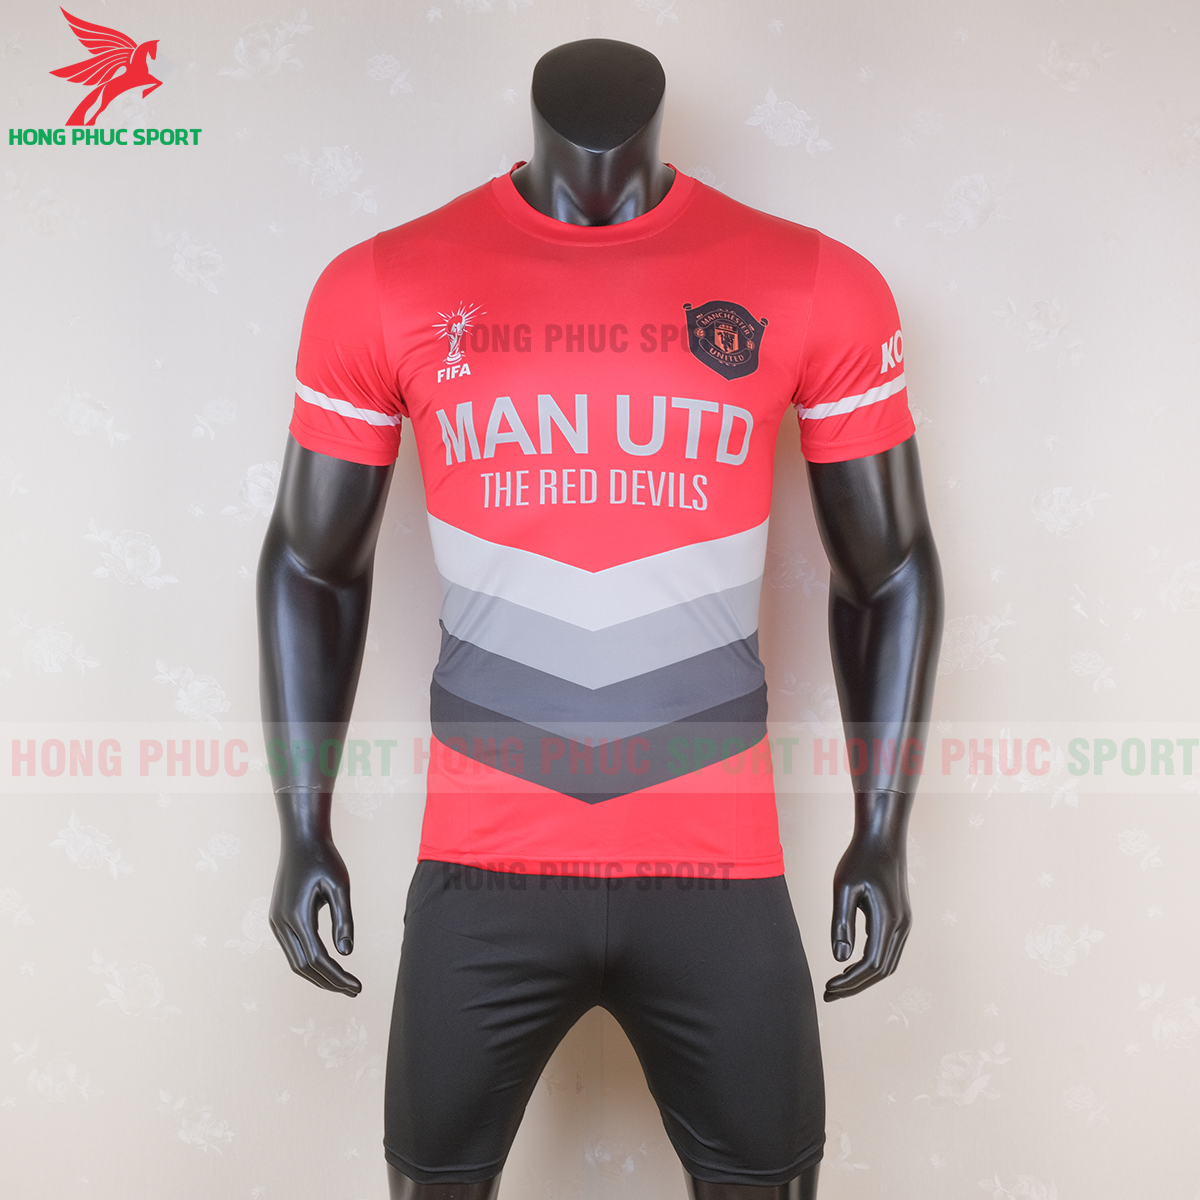 https://cdn.hongphucsport.com/unsafe/s4.shopbay.vn/files/285/ao-bong-da-manchester-united-2020-2021-phien-ban-fan-mau-5-6-5f6c116115956.png